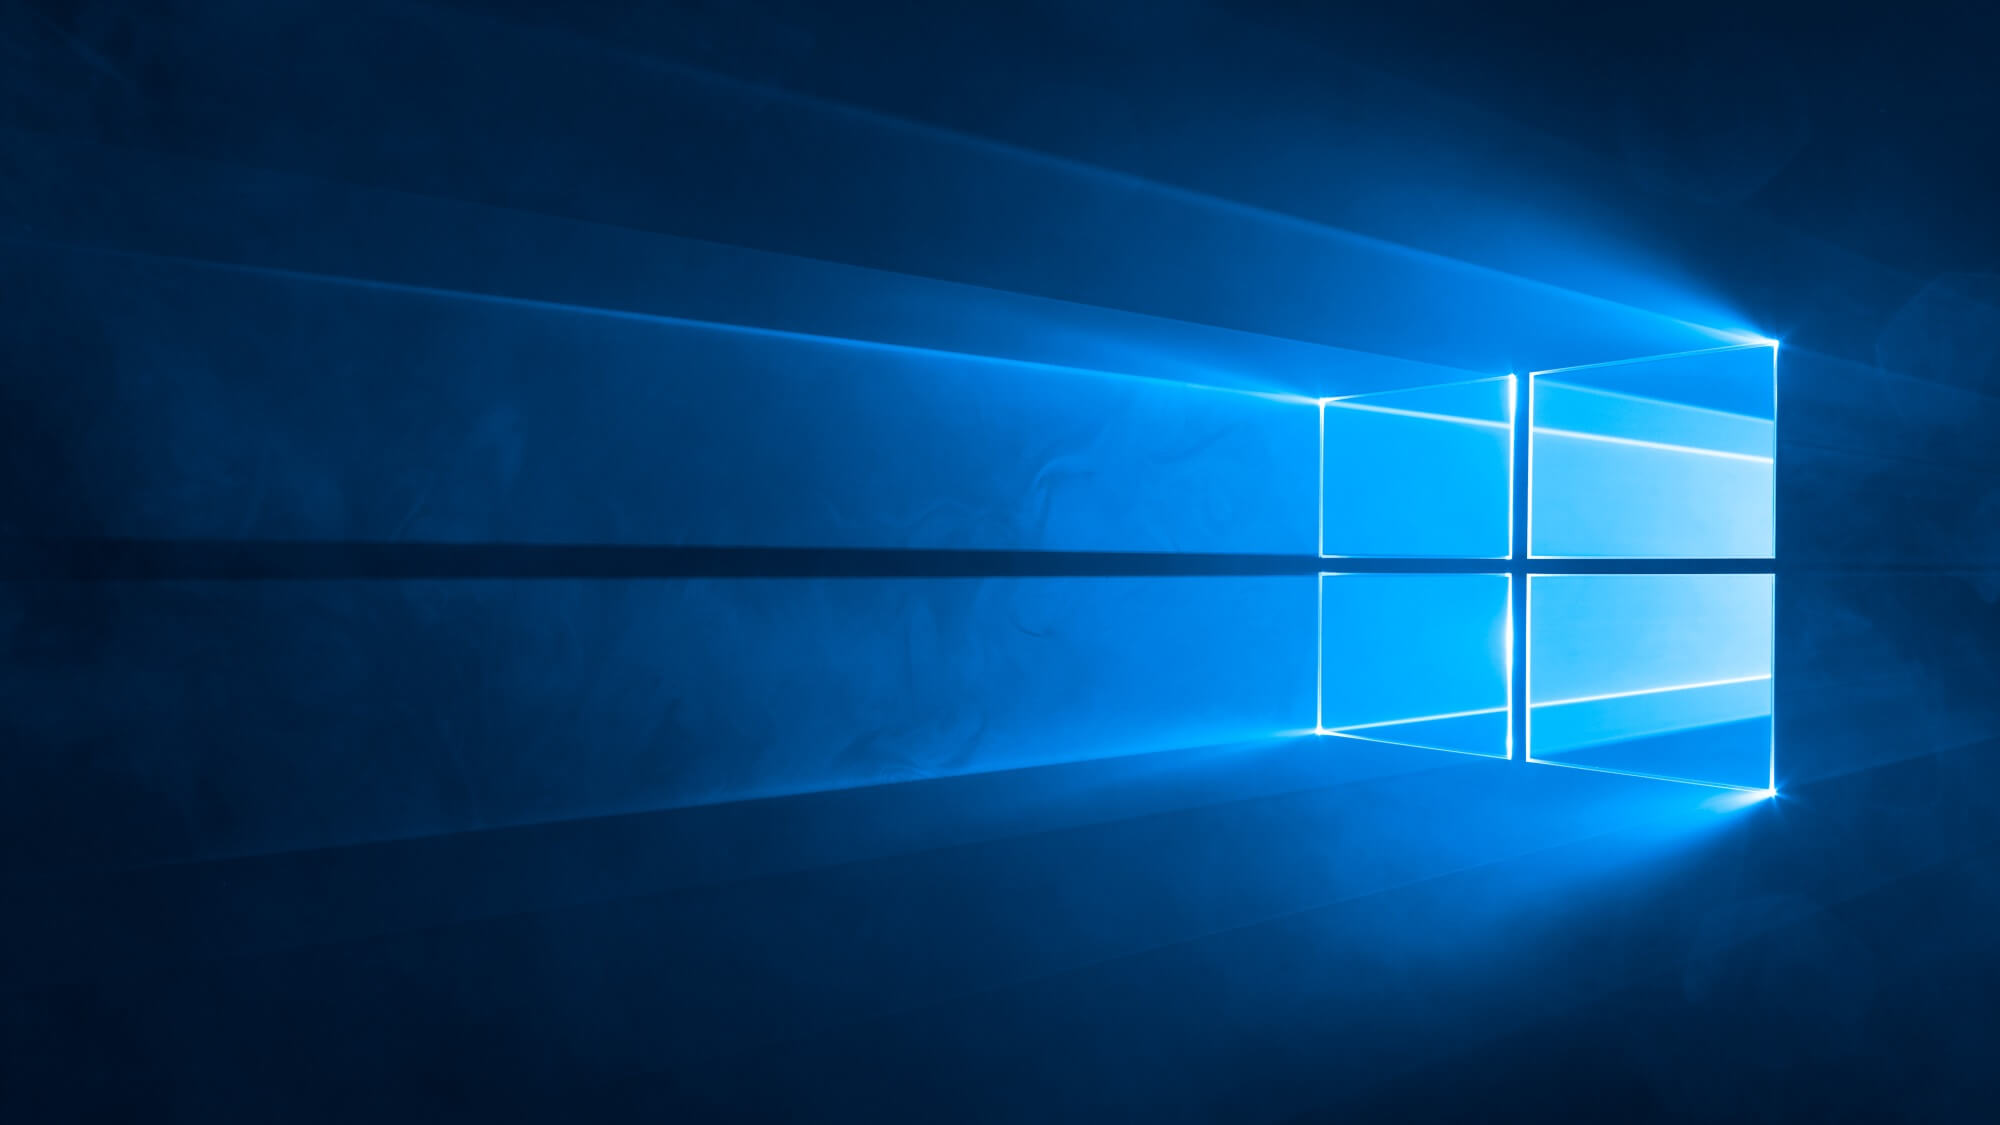 Microsoft releases new Windows 10 preview to fix reliability issues, including BSOD reboots